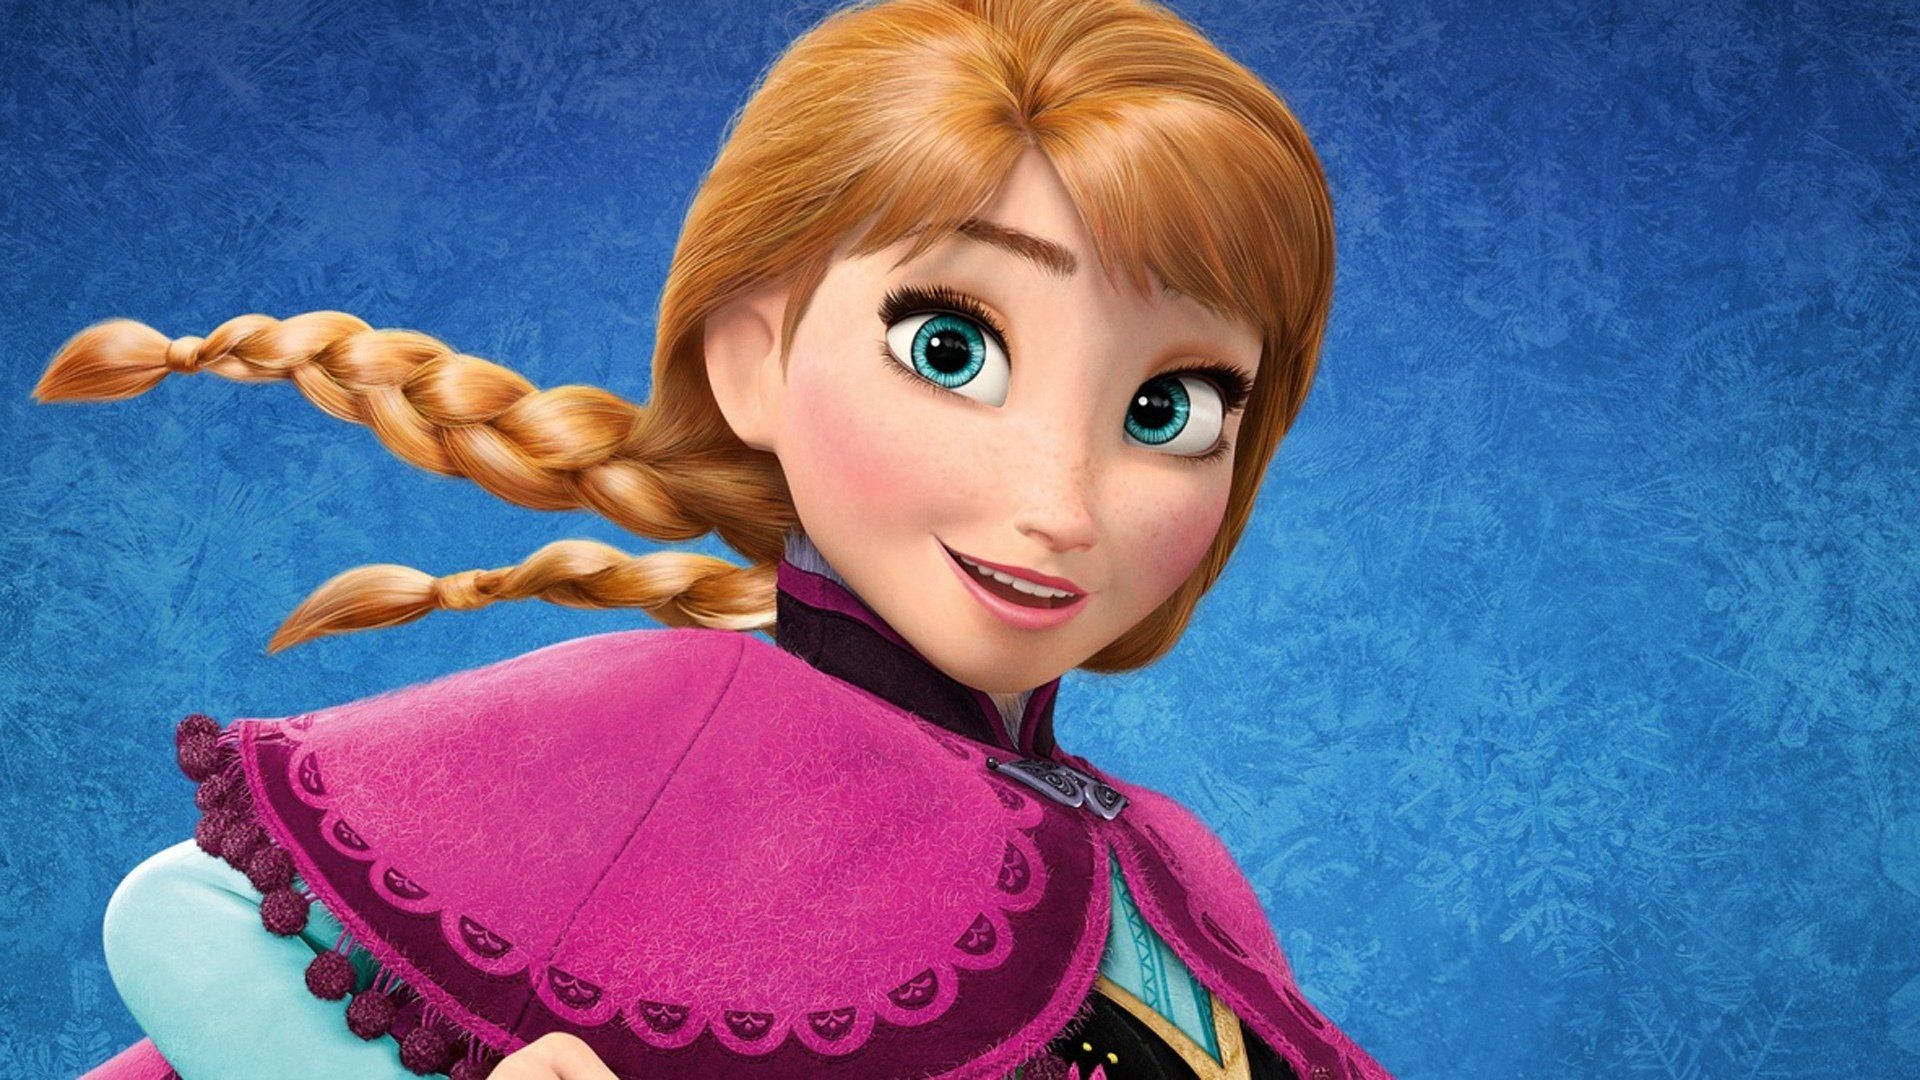 elsa and anna wallpapers,doll,toy,animation,barbie,brown hair